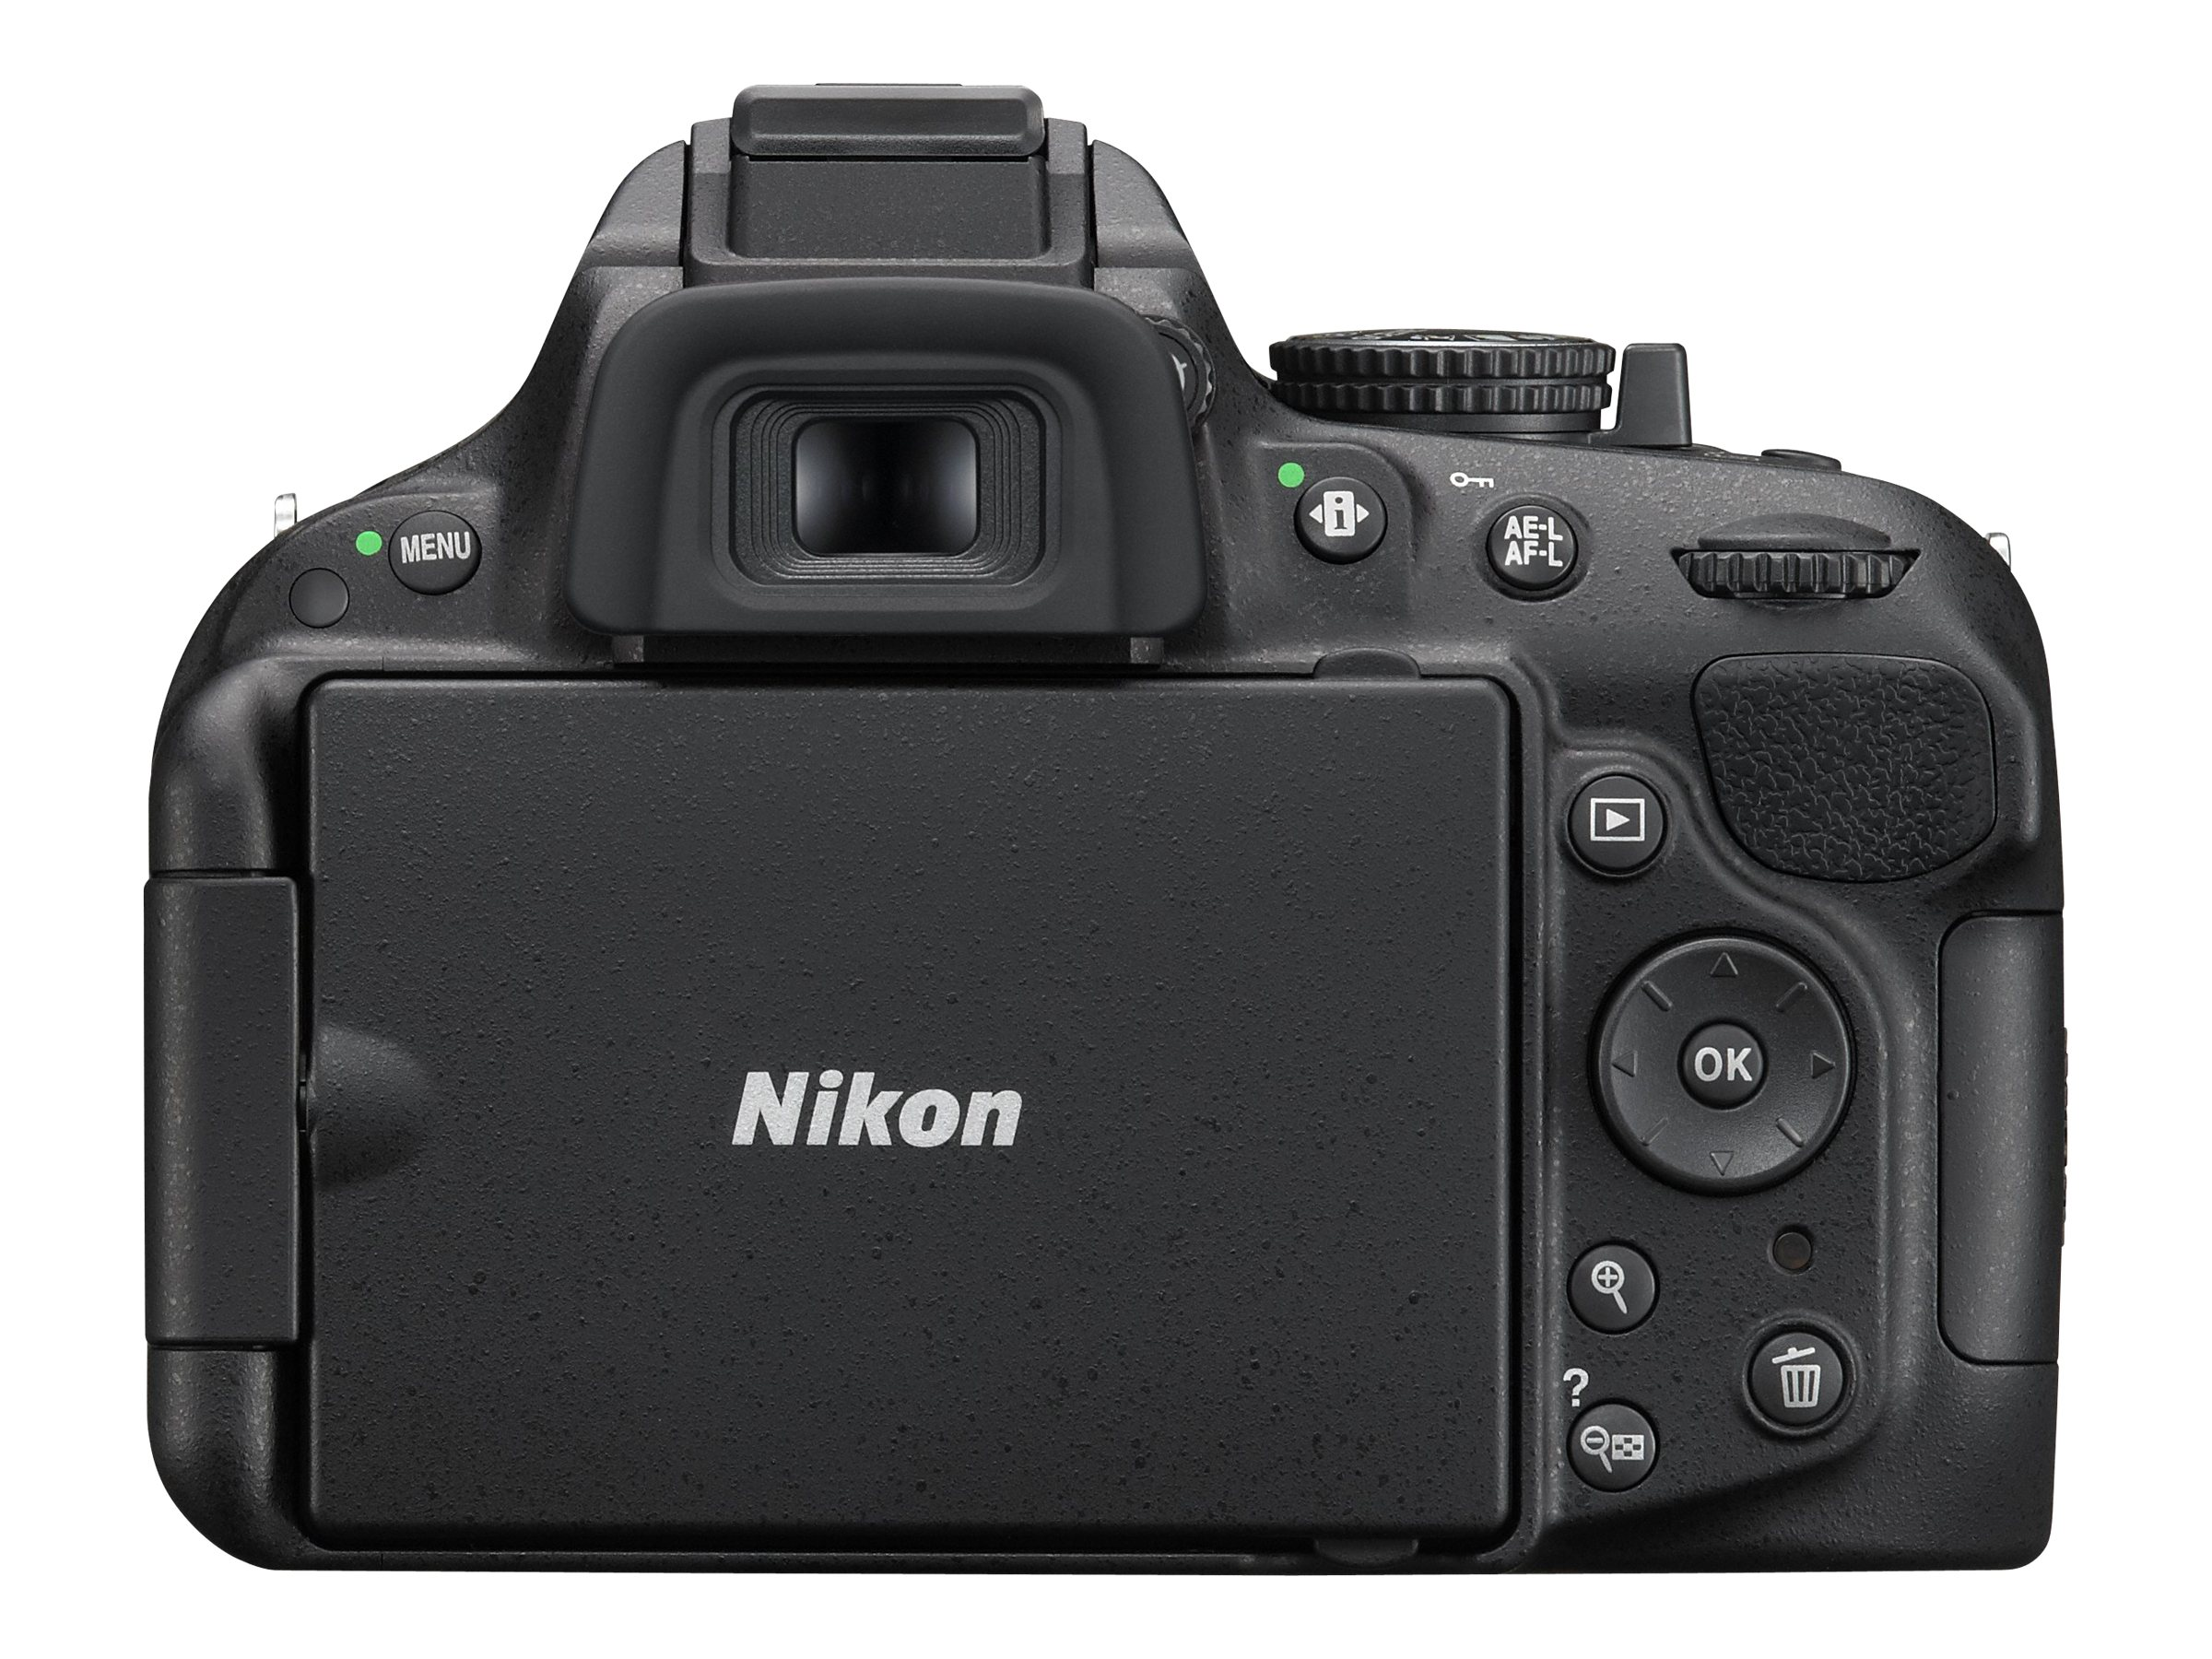 Nikon D5200 Digital SLR Camera, Black (Body Only), 1501